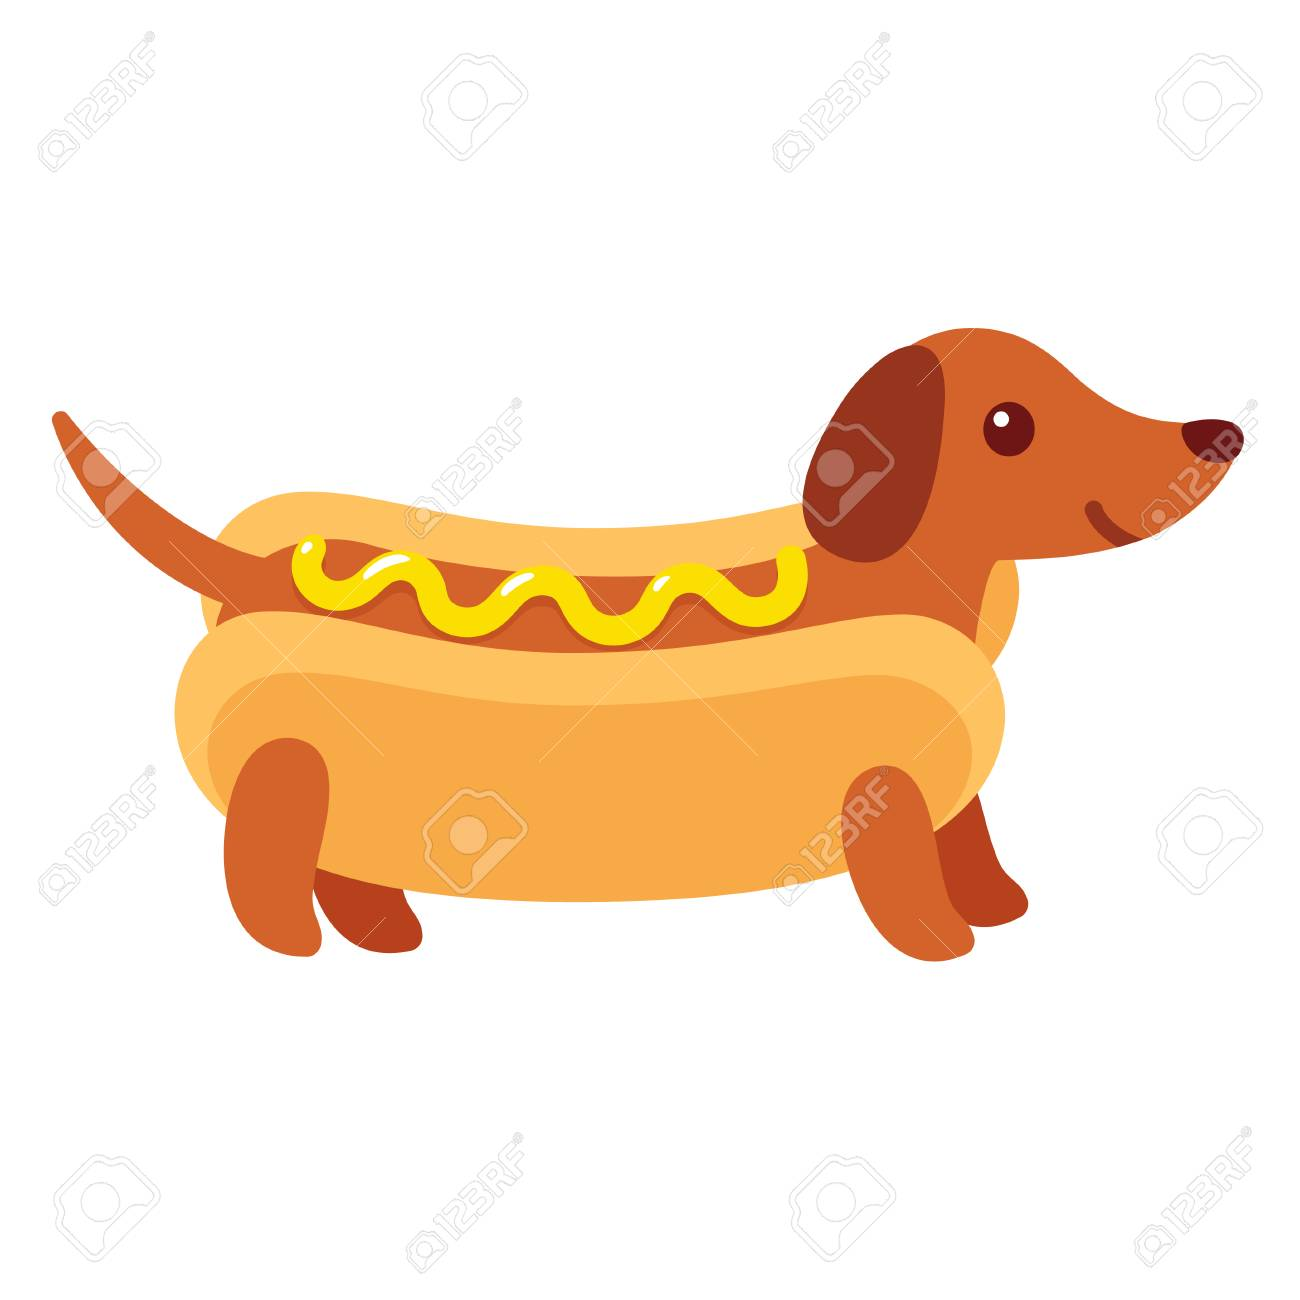 Dachshund Puppy In Hot Dog Bun With Mustard Funny Cartoon Drawing Royalty Free Cliparts Vectors And Stock Illustration Image 91728841